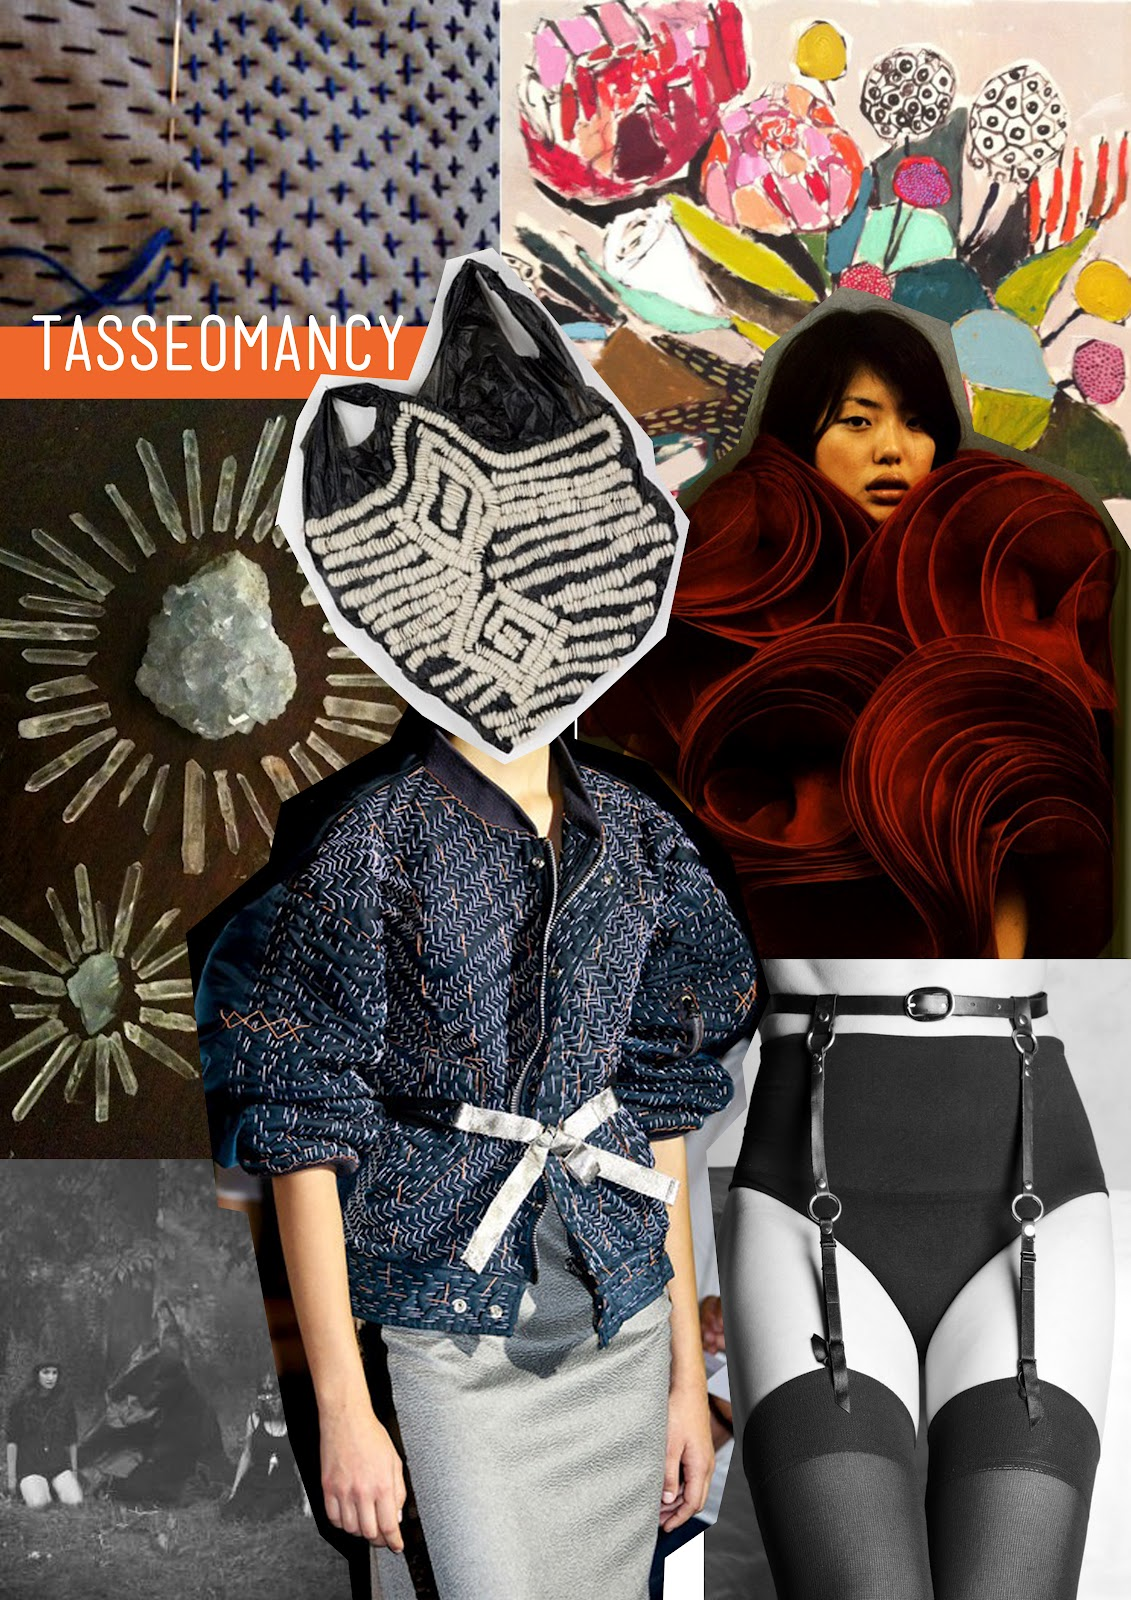 Tasseomancy, crystals, witchcraft inspiration mood board.